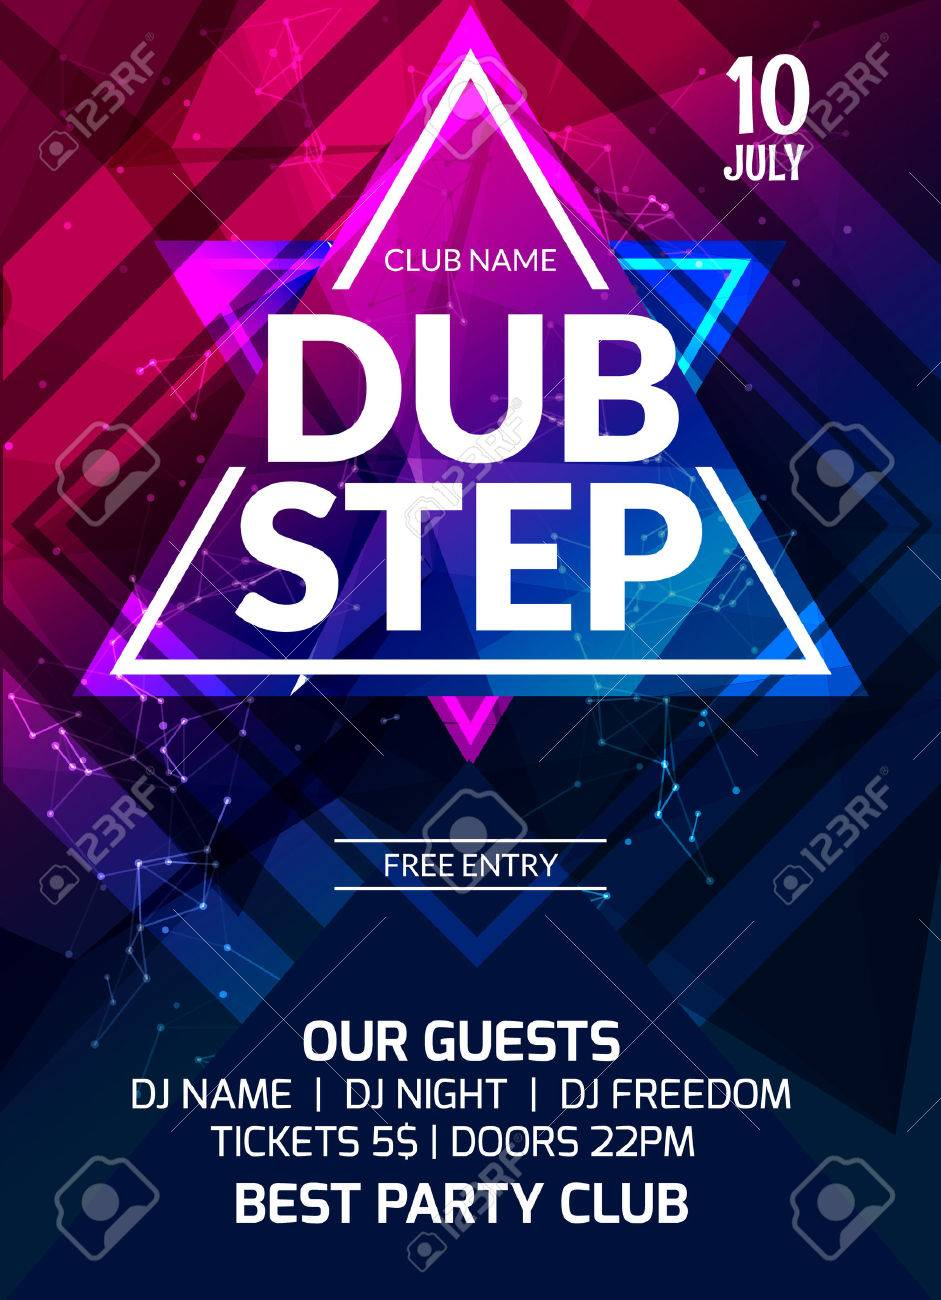 dubstep party flyer poster futuristic club flyer design template